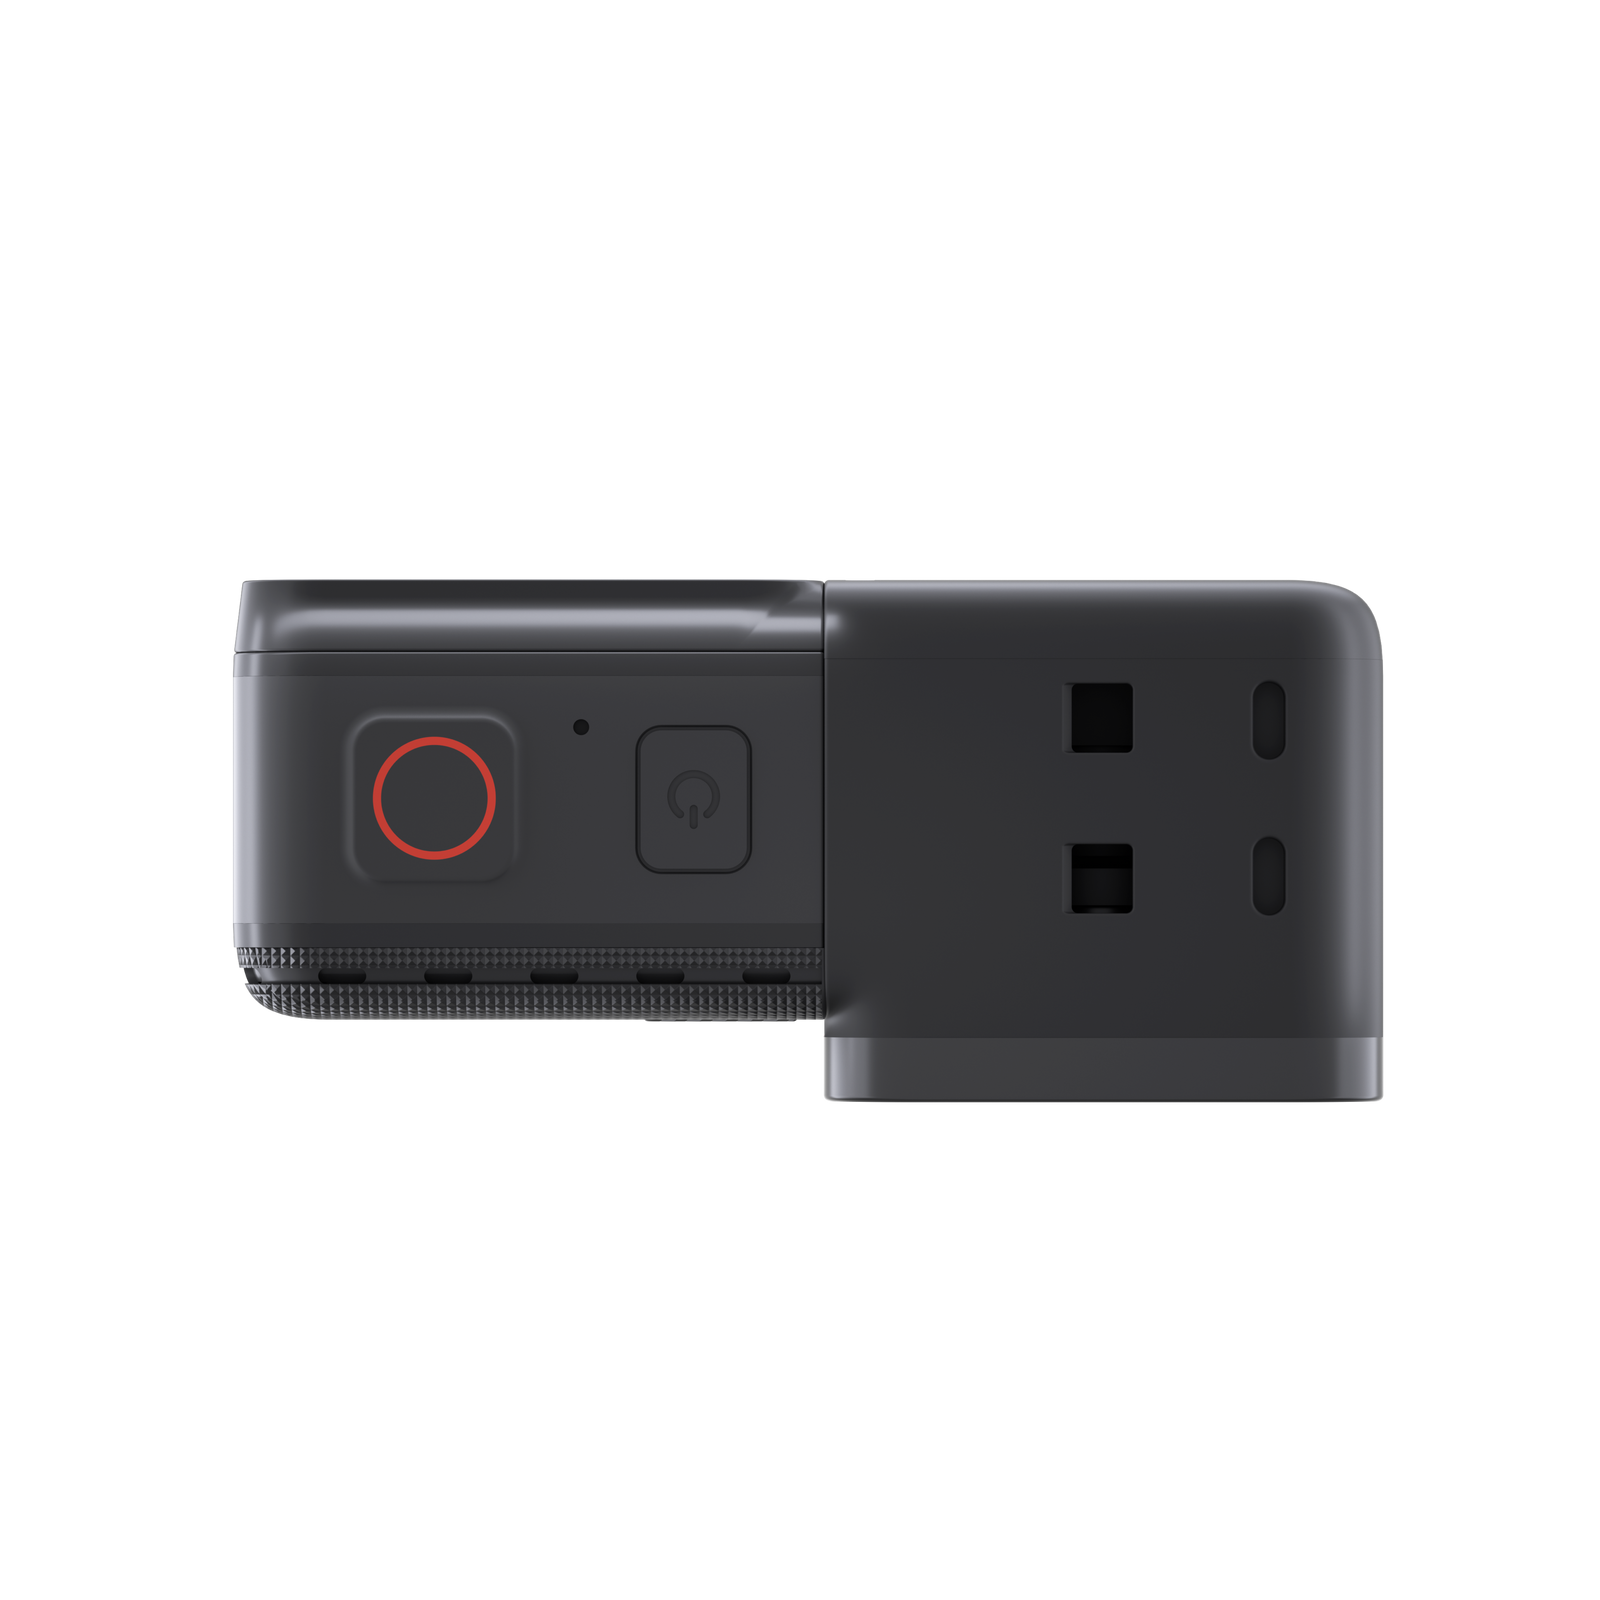 Insta360-ONE R - 4K camera mounted - top view